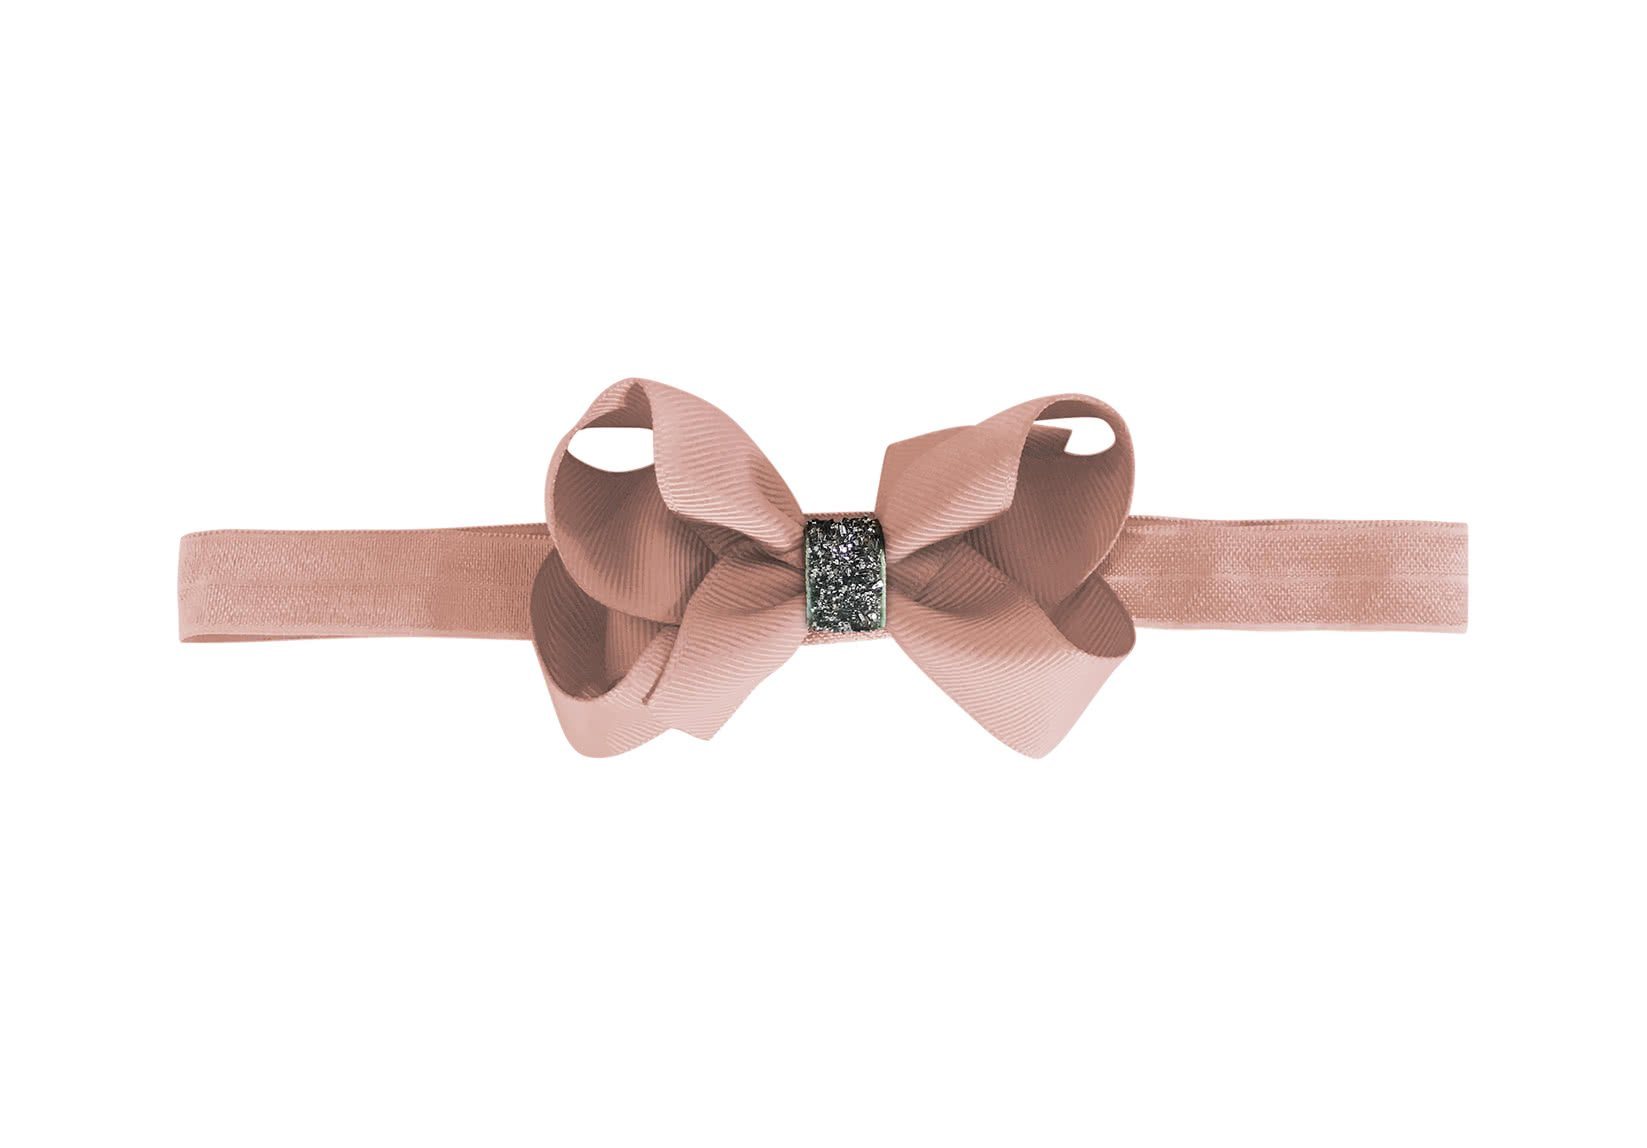 Medium Boutique Bow – Elastic Hairband